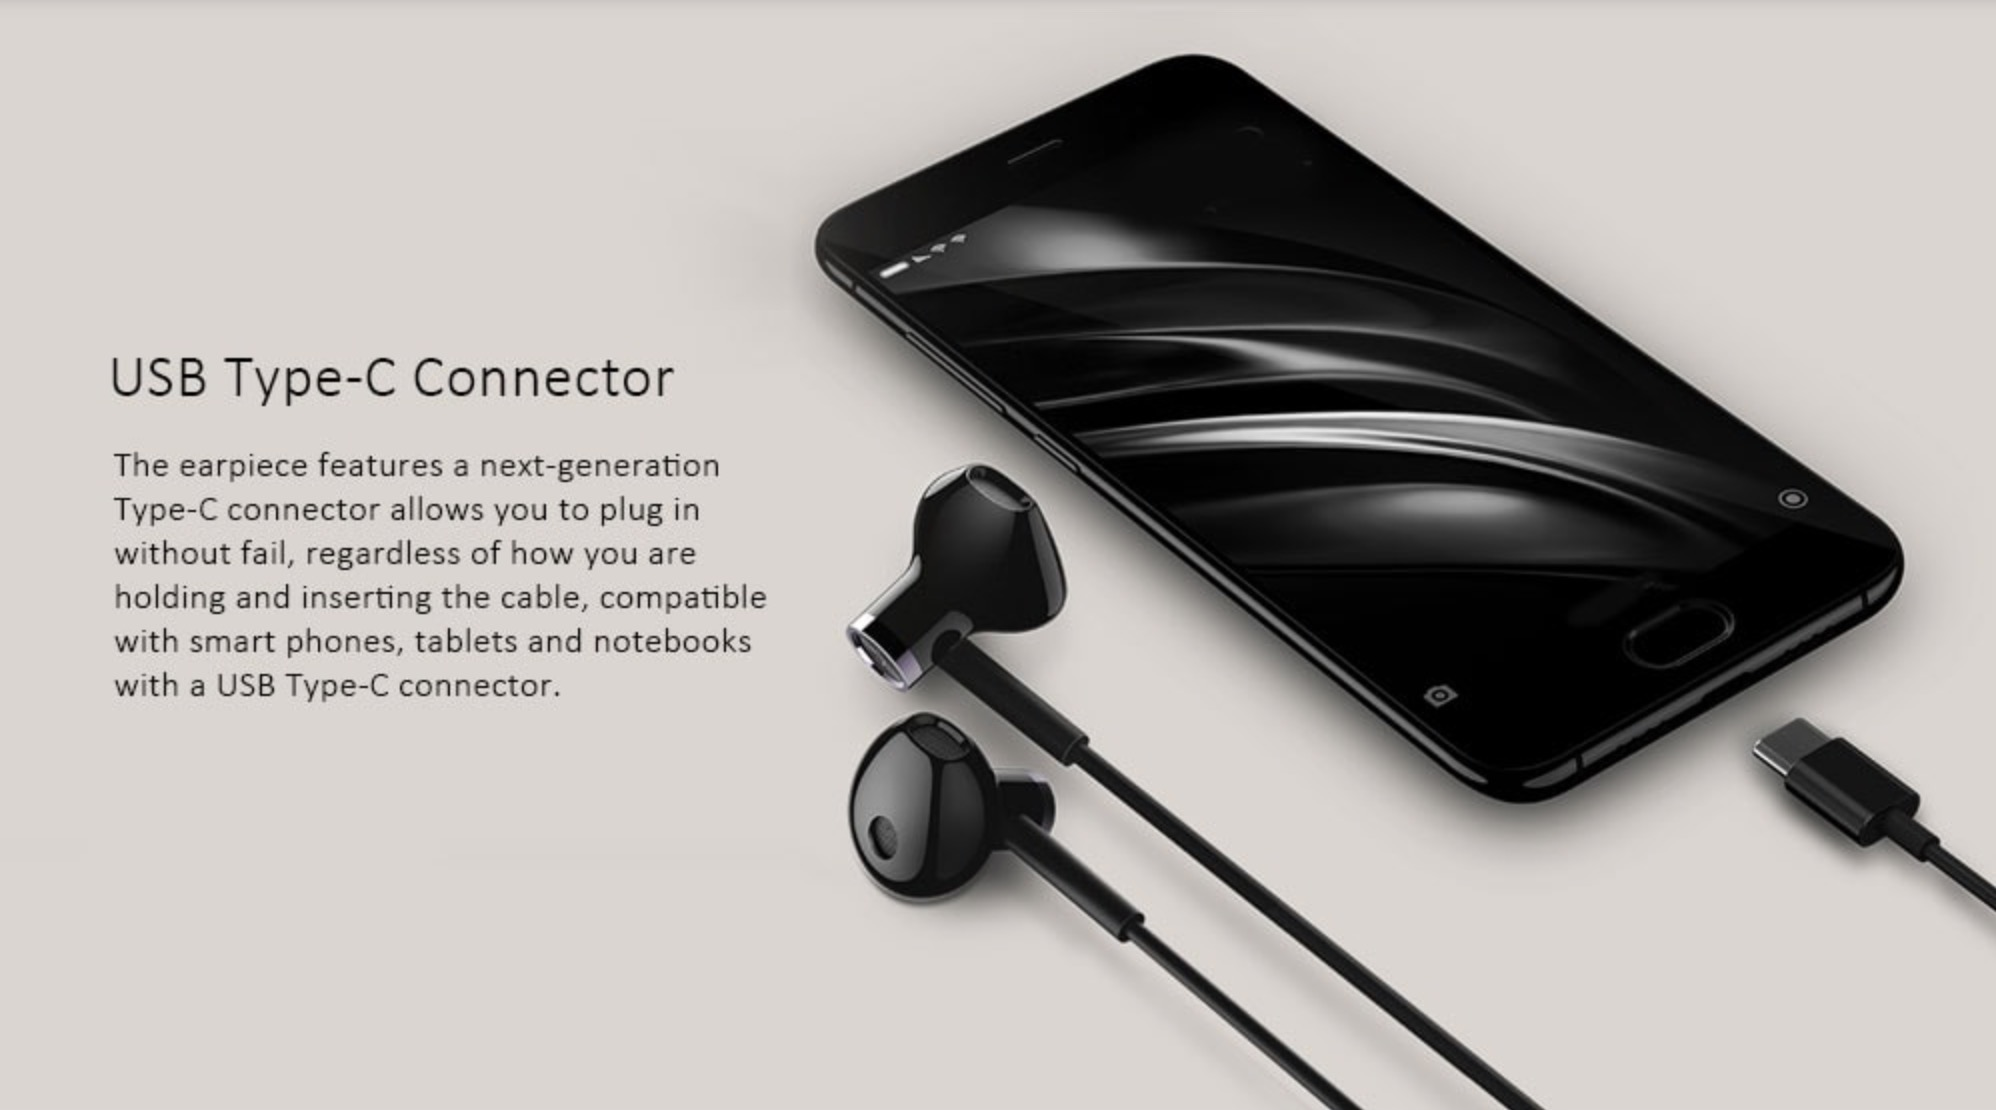 USB Type-C Connector The earpiece features a next-generation Type-C connector allows you to plug in without fail, regardless of how you are holding and inserting the cable, compatible with smartphones, tablets and notebooks with a USB Type-C connector.